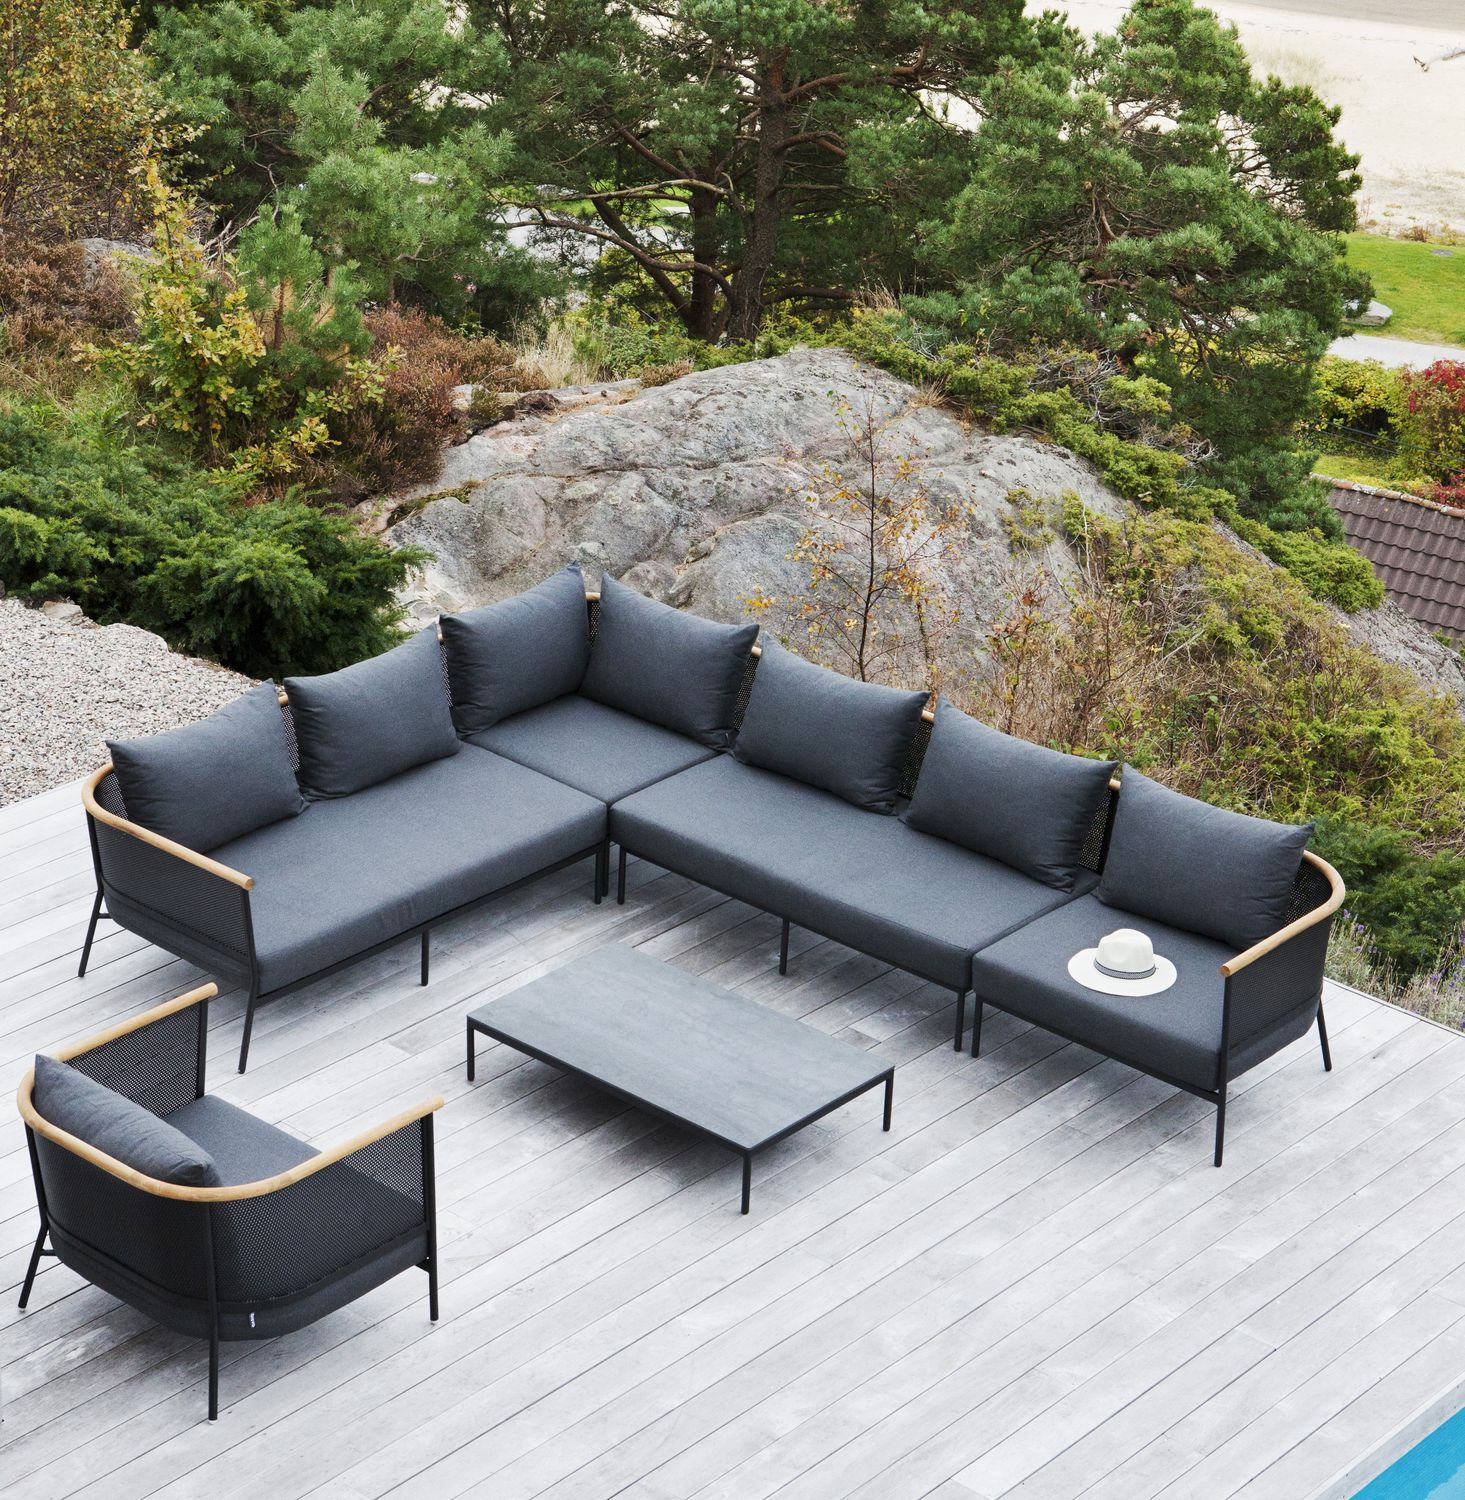 Modular sofa / contemporary / outdoor / Sunbrella® - RIAD ...